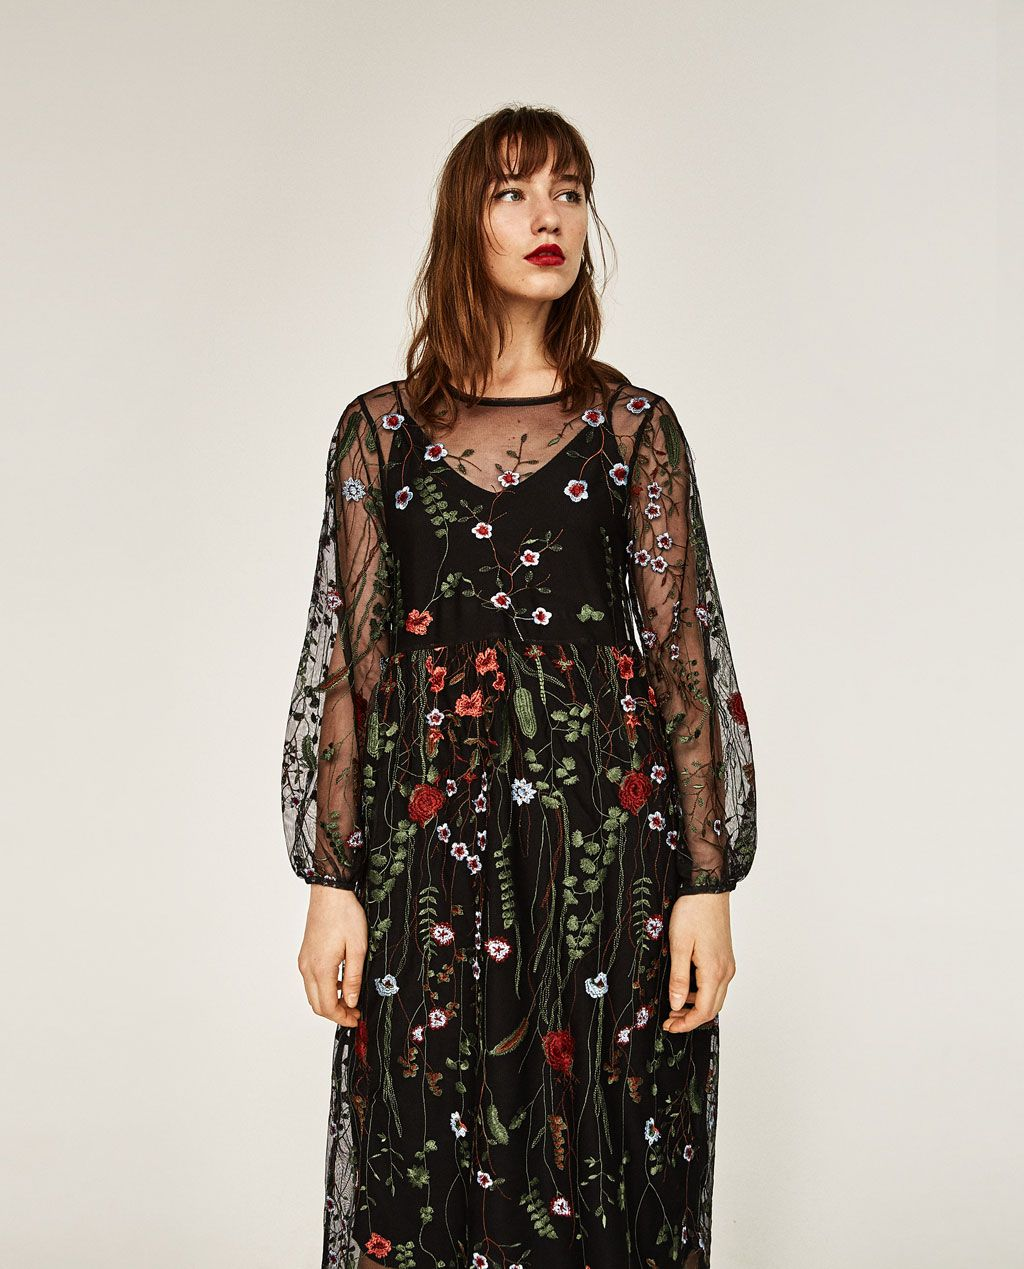 Image 4 Of Long Floral Embroidered Dress From Zara Sheer Floral Dress Embroidered Dress Embroidered Tulle Dress